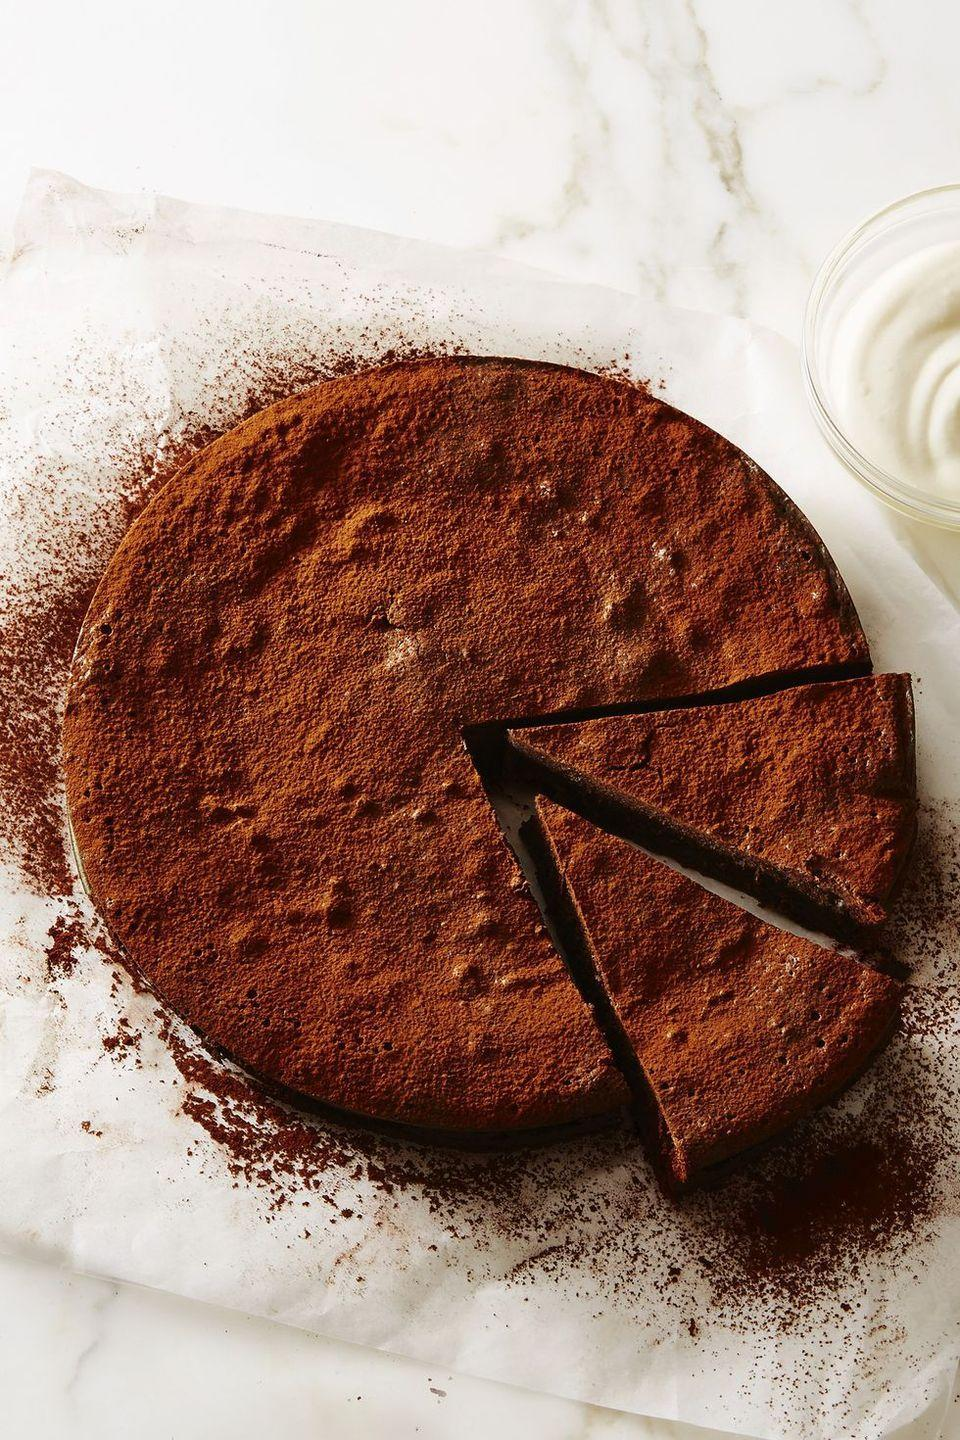 "<p>Ditching the flour makes this cake deliciously rich and conveniently gluten-free so that no one has to miss out on dessert.</p><p><em><a href=""https://www.goodhousekeeping.com/food-recipes/dessert/a48194/flourless-fudge-cake-recipe/"" rel=""nofollow noopener"" target=""_blank"" data-ylk=""slk:Get the recipe for Flourless Fudge Cake »"" class=""link rapid-noclick-resp"">Get the recipe for Flourless Fudge Cake »</a></em></p><p><strong>RELATED: </strong><a href=""https://www.goodhousekeeping.com/food-recipes/dessert/g376/gluten-free-dessert-recipes/"" rel=""nofollow noopener"" target=""_blank"" data-ylk=""slk:25 Gluten-Free Desserts That Will Be the Hit of Any Party"" class=""link rapid-noclick-resp"">25 Gluten-Free Desserts That Will Be the Hit of Any Party</a><br></p>"